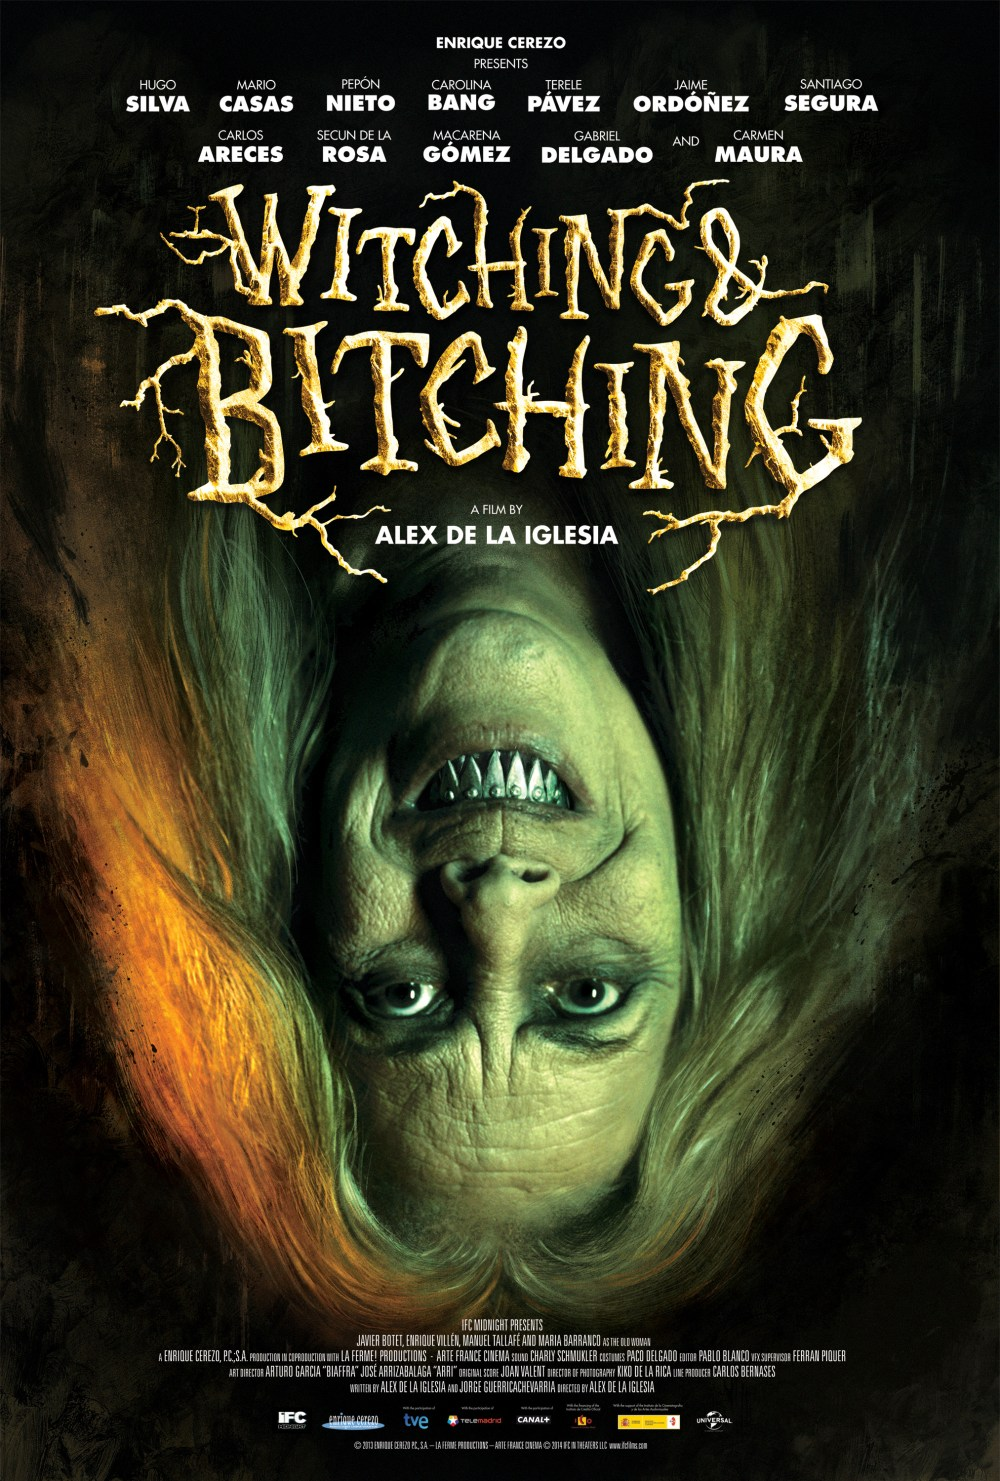 witching_and_bitching--poster_for_print--anthony_palumbo-5-21-2014-03000...